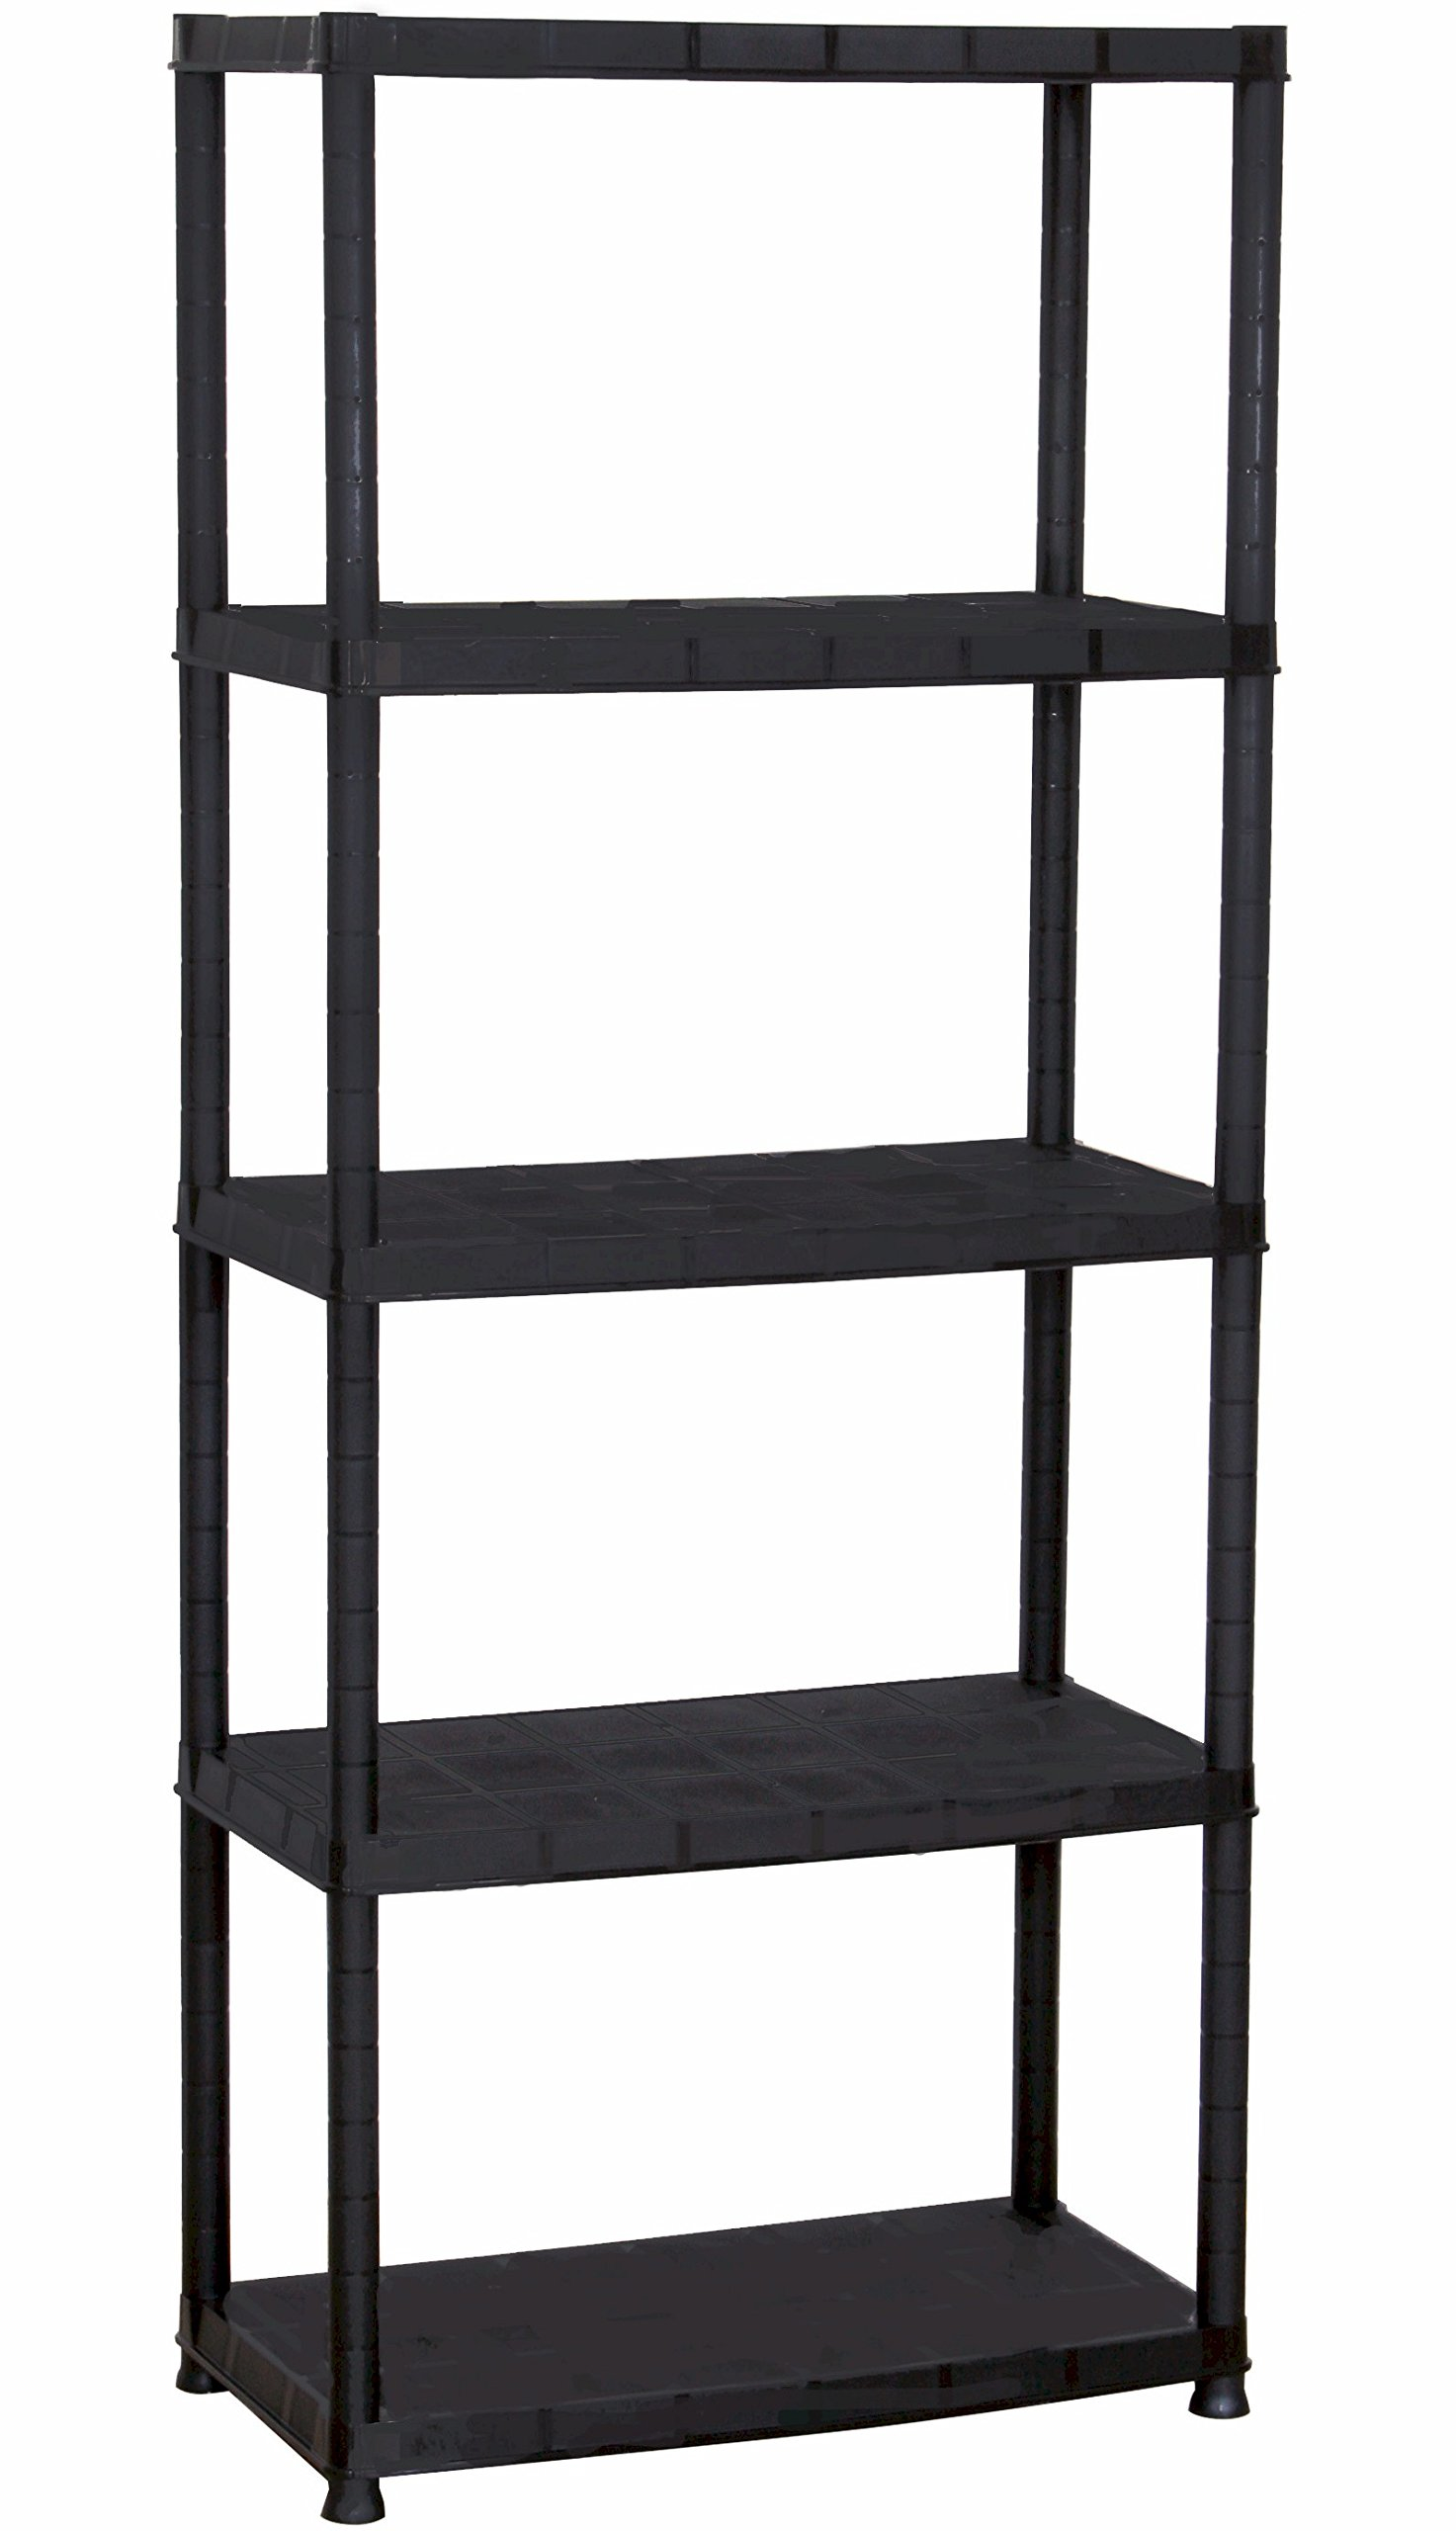 5-Shelf Plastic Storage with Floor Risers, Home and Kitchen, Storage and Office, Plascoline